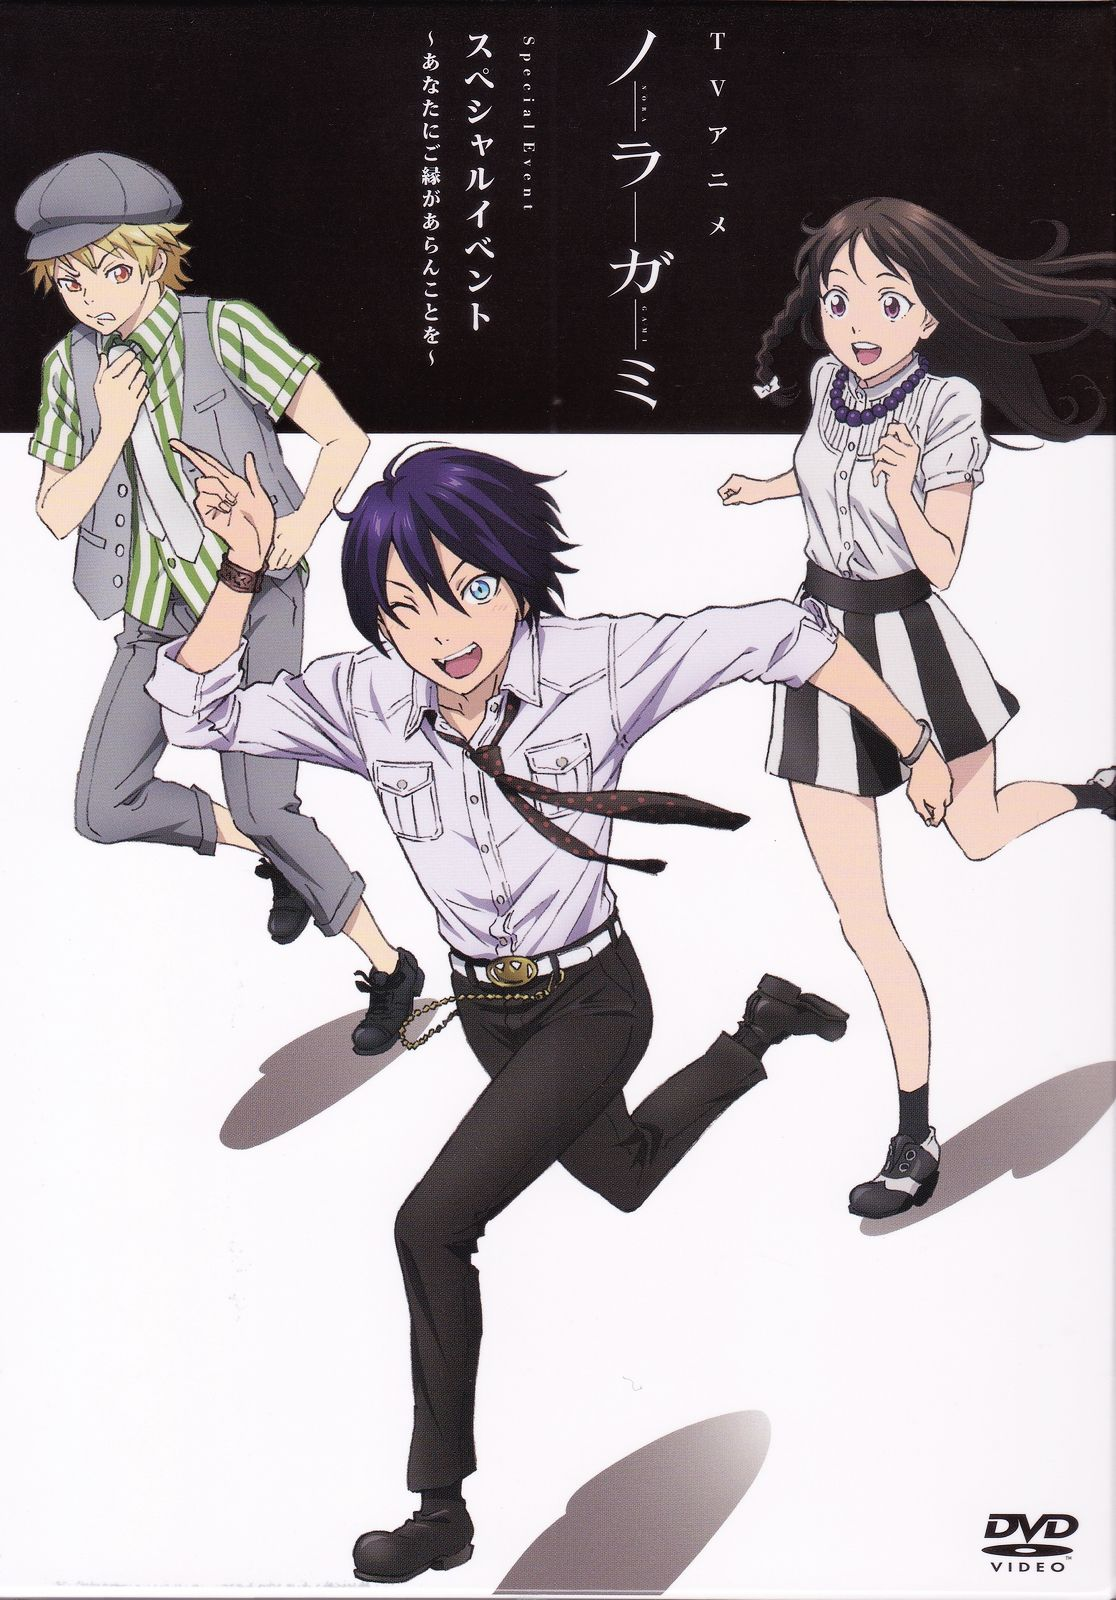 Tags DVD (Source), Scan, Official Art, Noragami, BONES